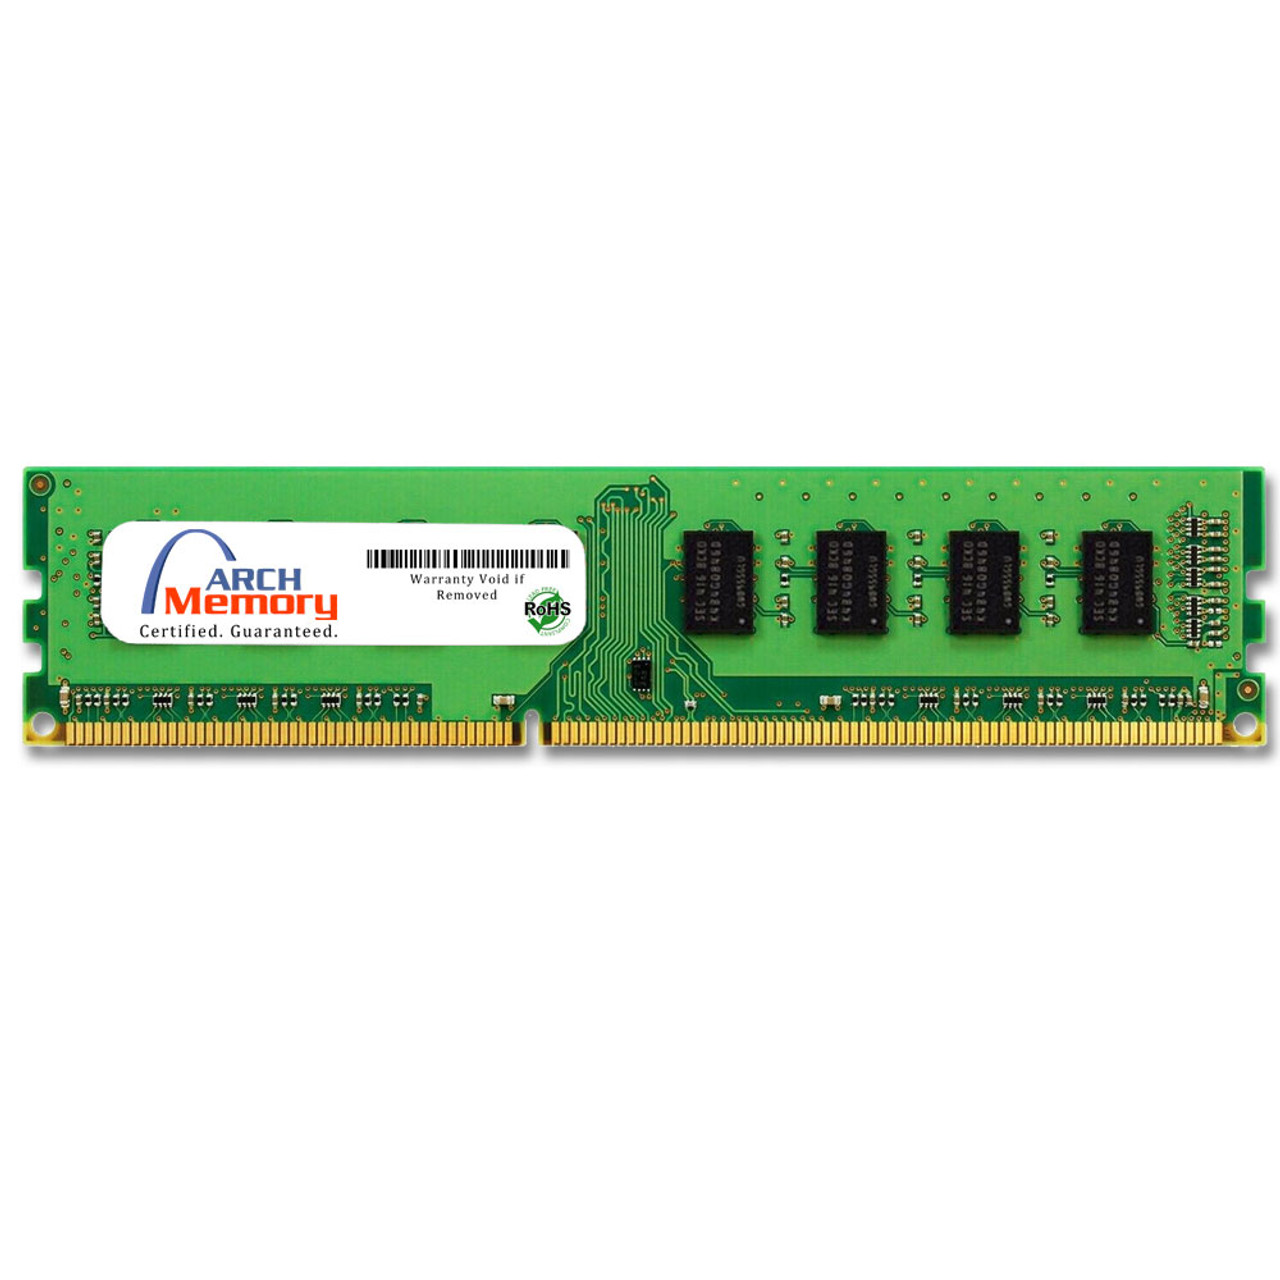 4GB 240-Pin DDR3-1333 PC3-10600 UDIMM (2Rx8) RAM | Arch Memory